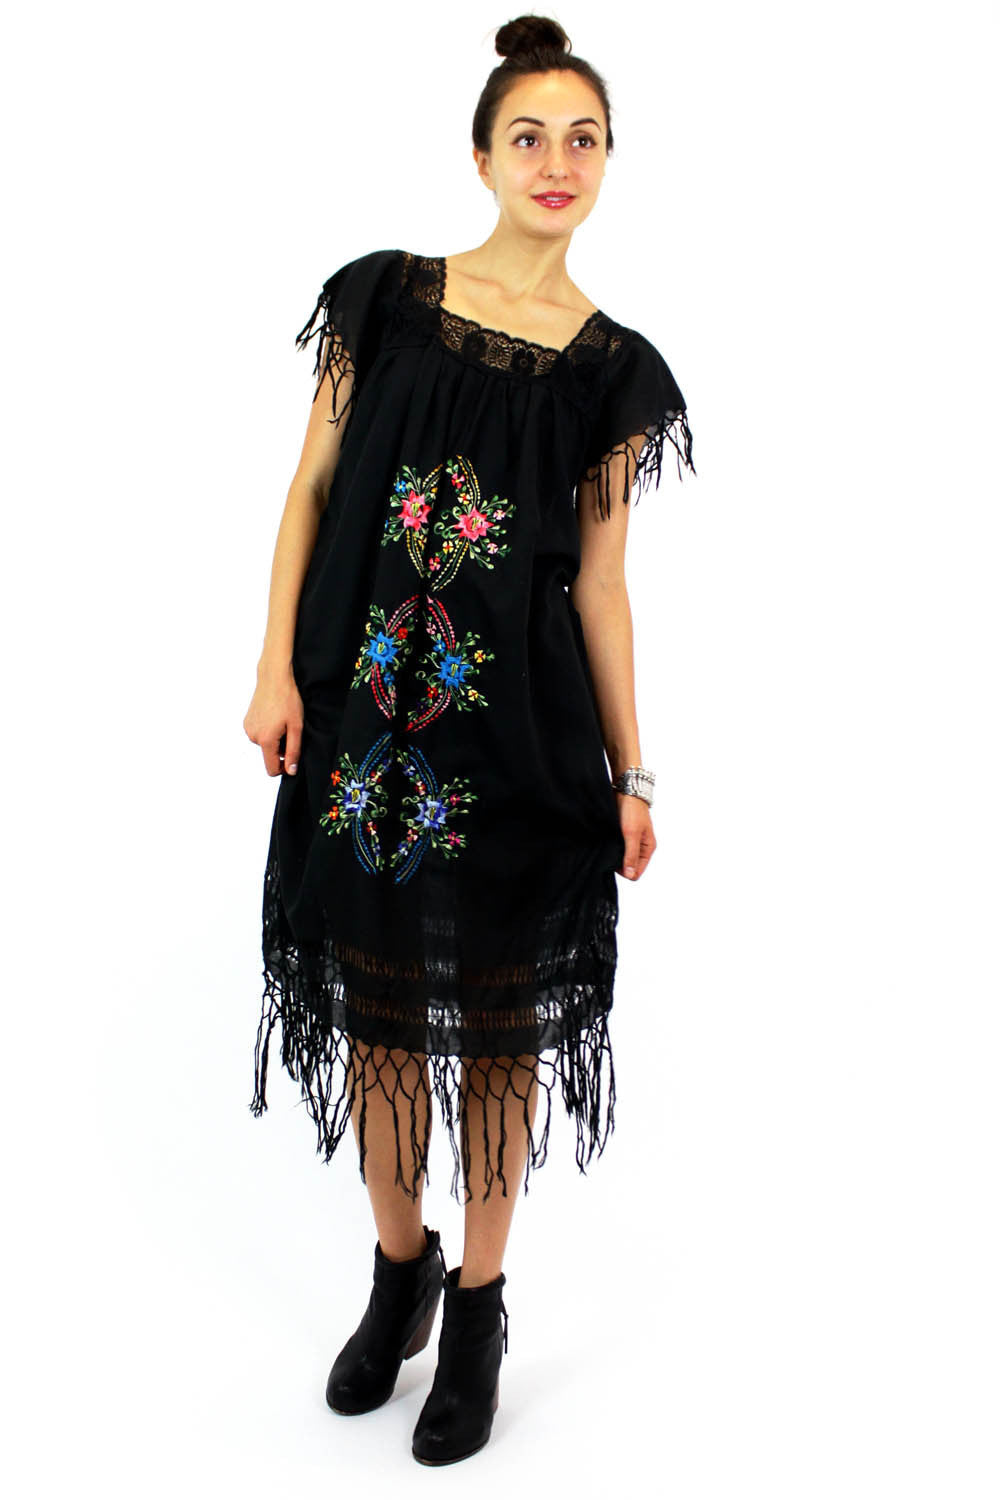 Mercado fringe dress